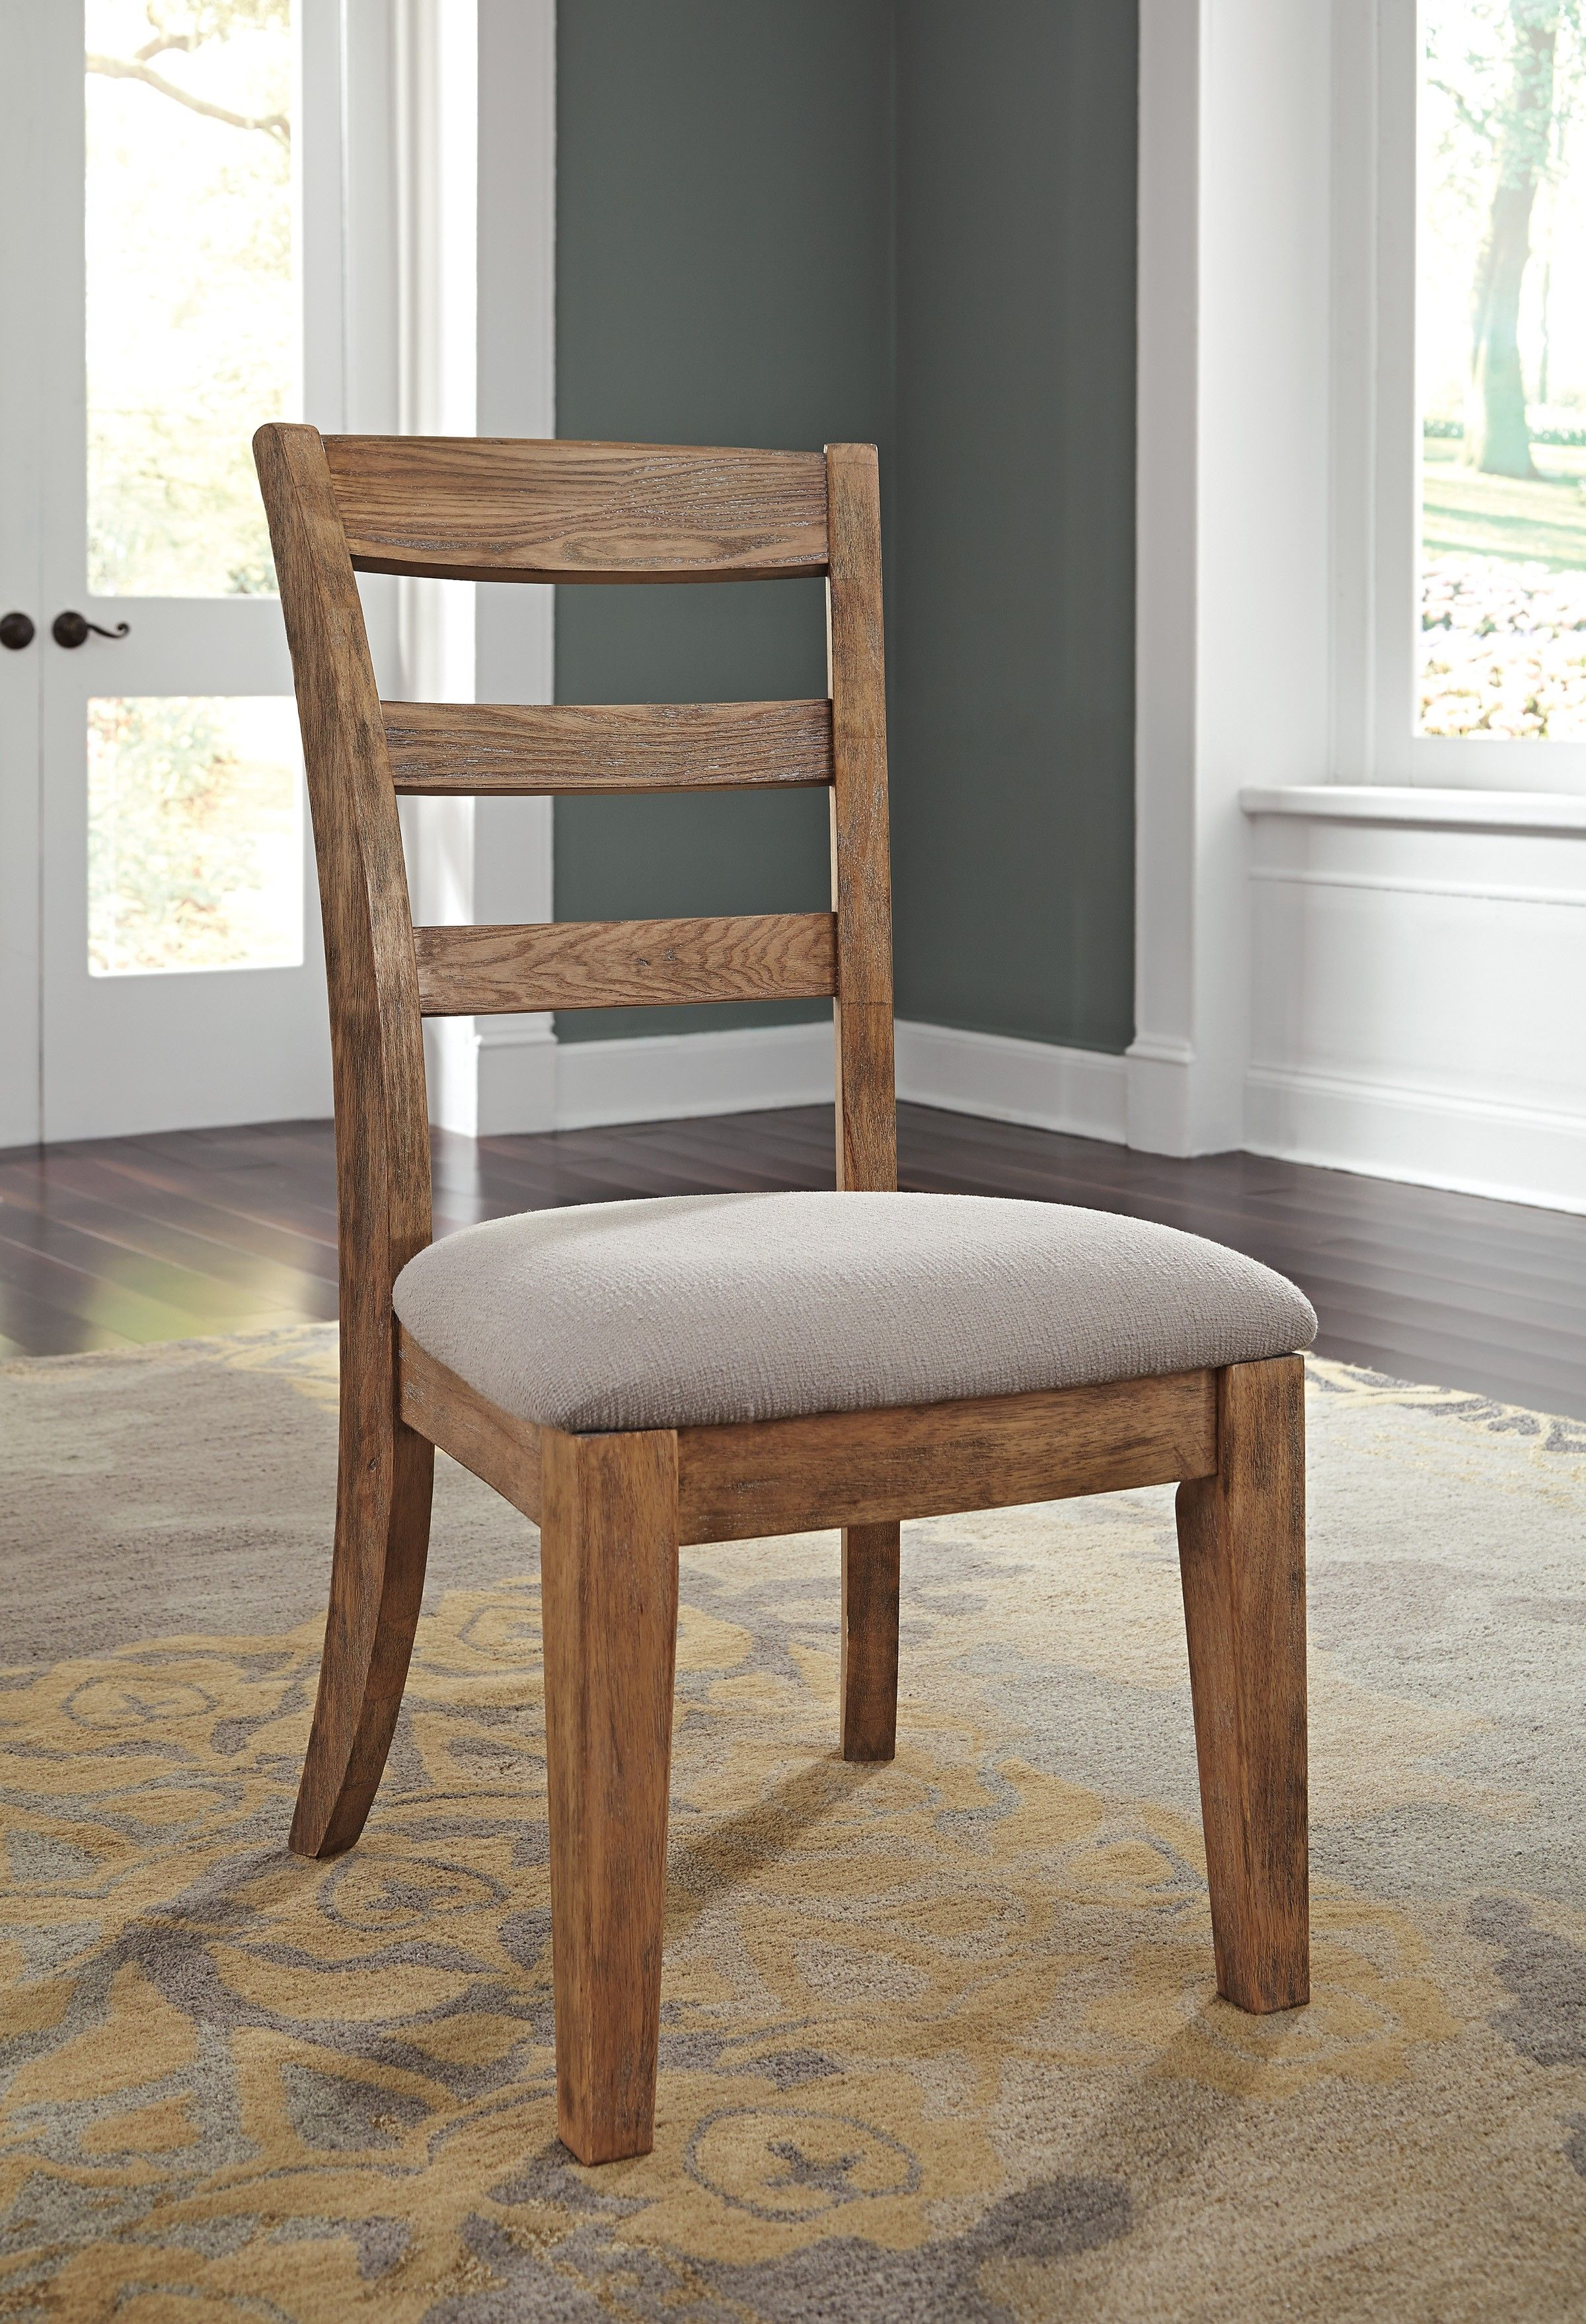 signature design by ashley dining chairs on ashley danimore d473 01 signature design dining uph side chair 2 cn upholstered side chair brown dining chairs furniture pinterest